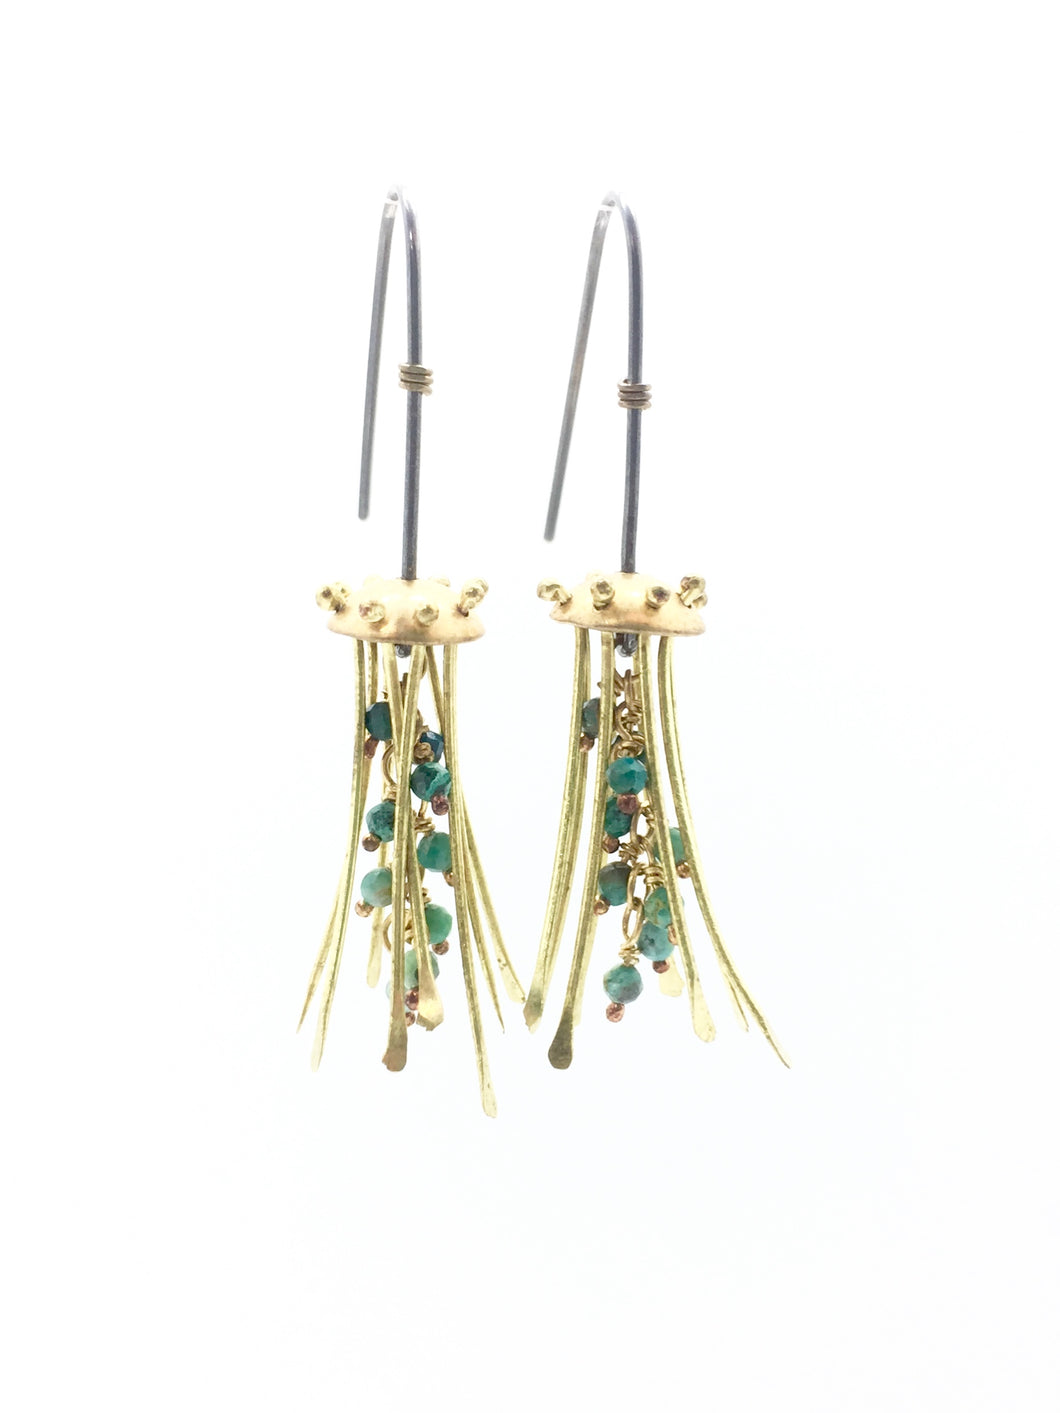 Mini Brass Jellyfish Earrings with Turquoise & Sterling Silver Earwires